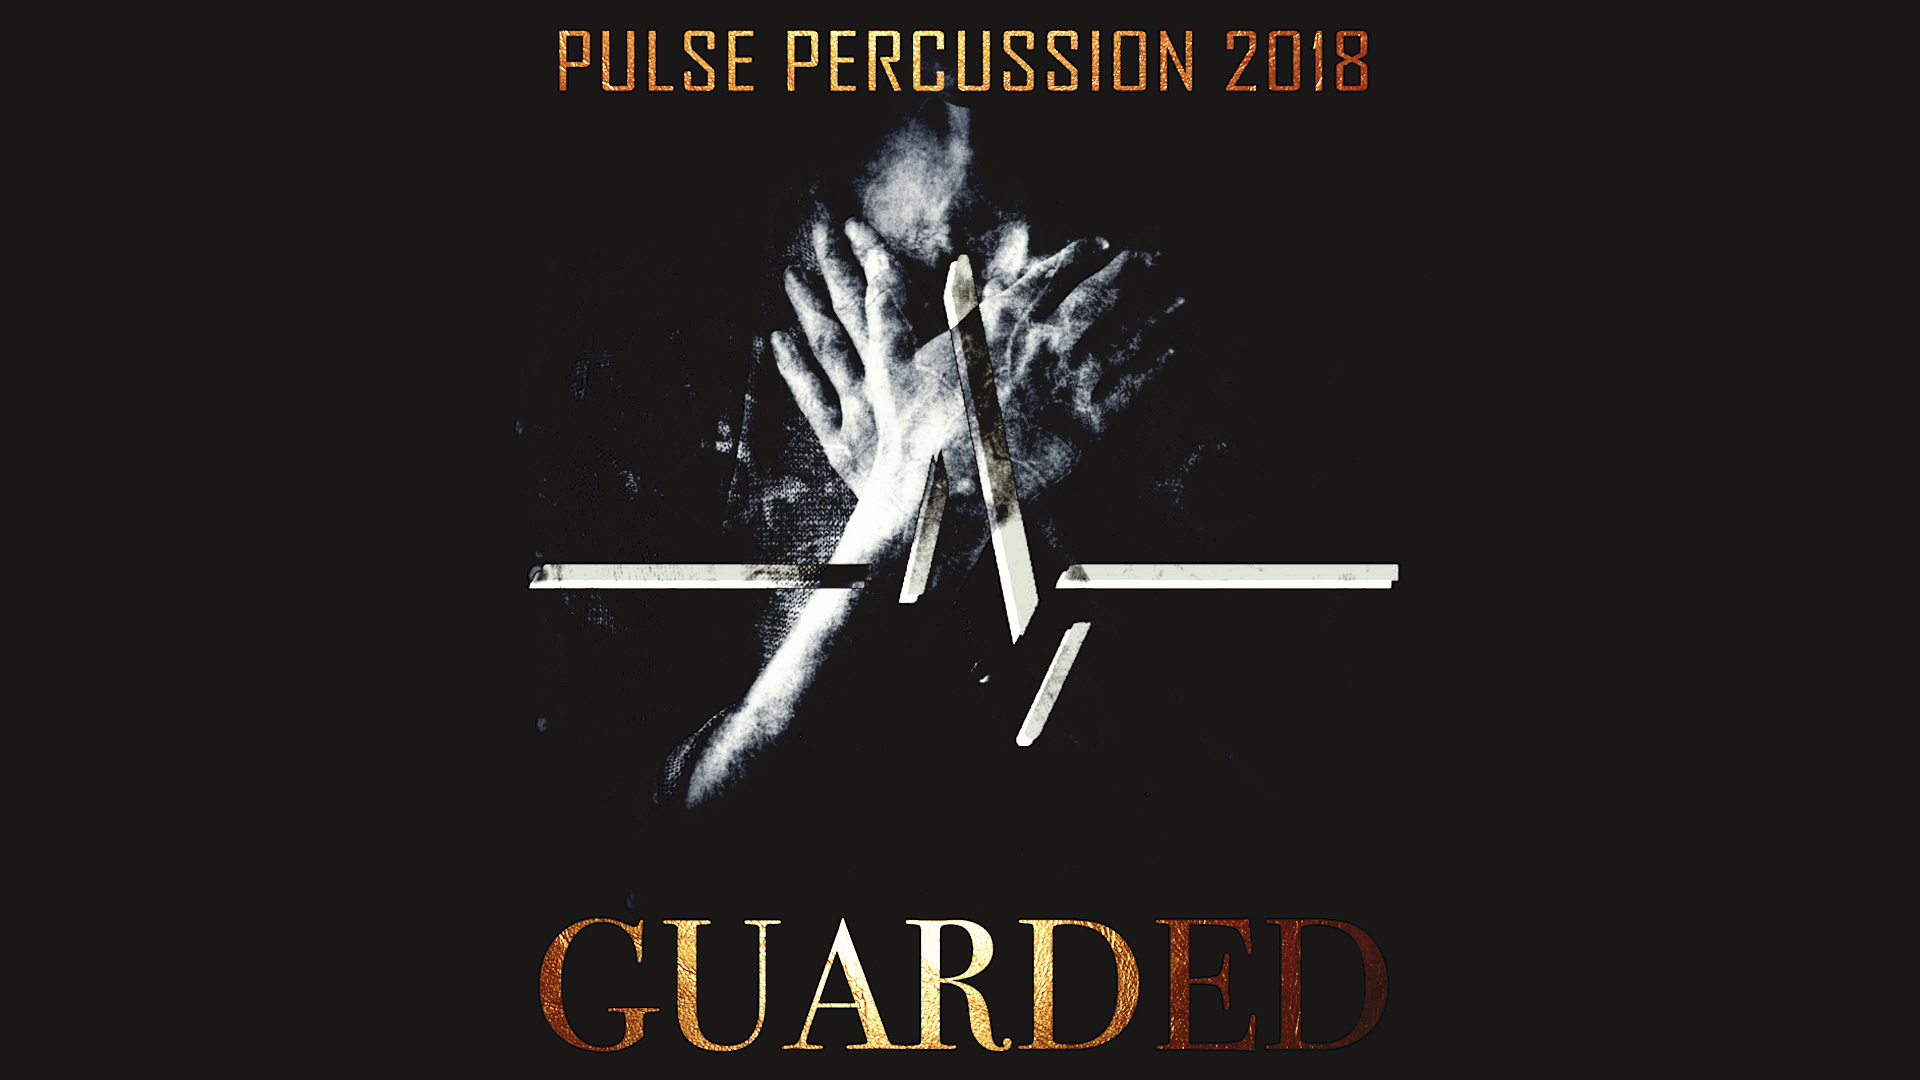 inside guarded pulse percussion